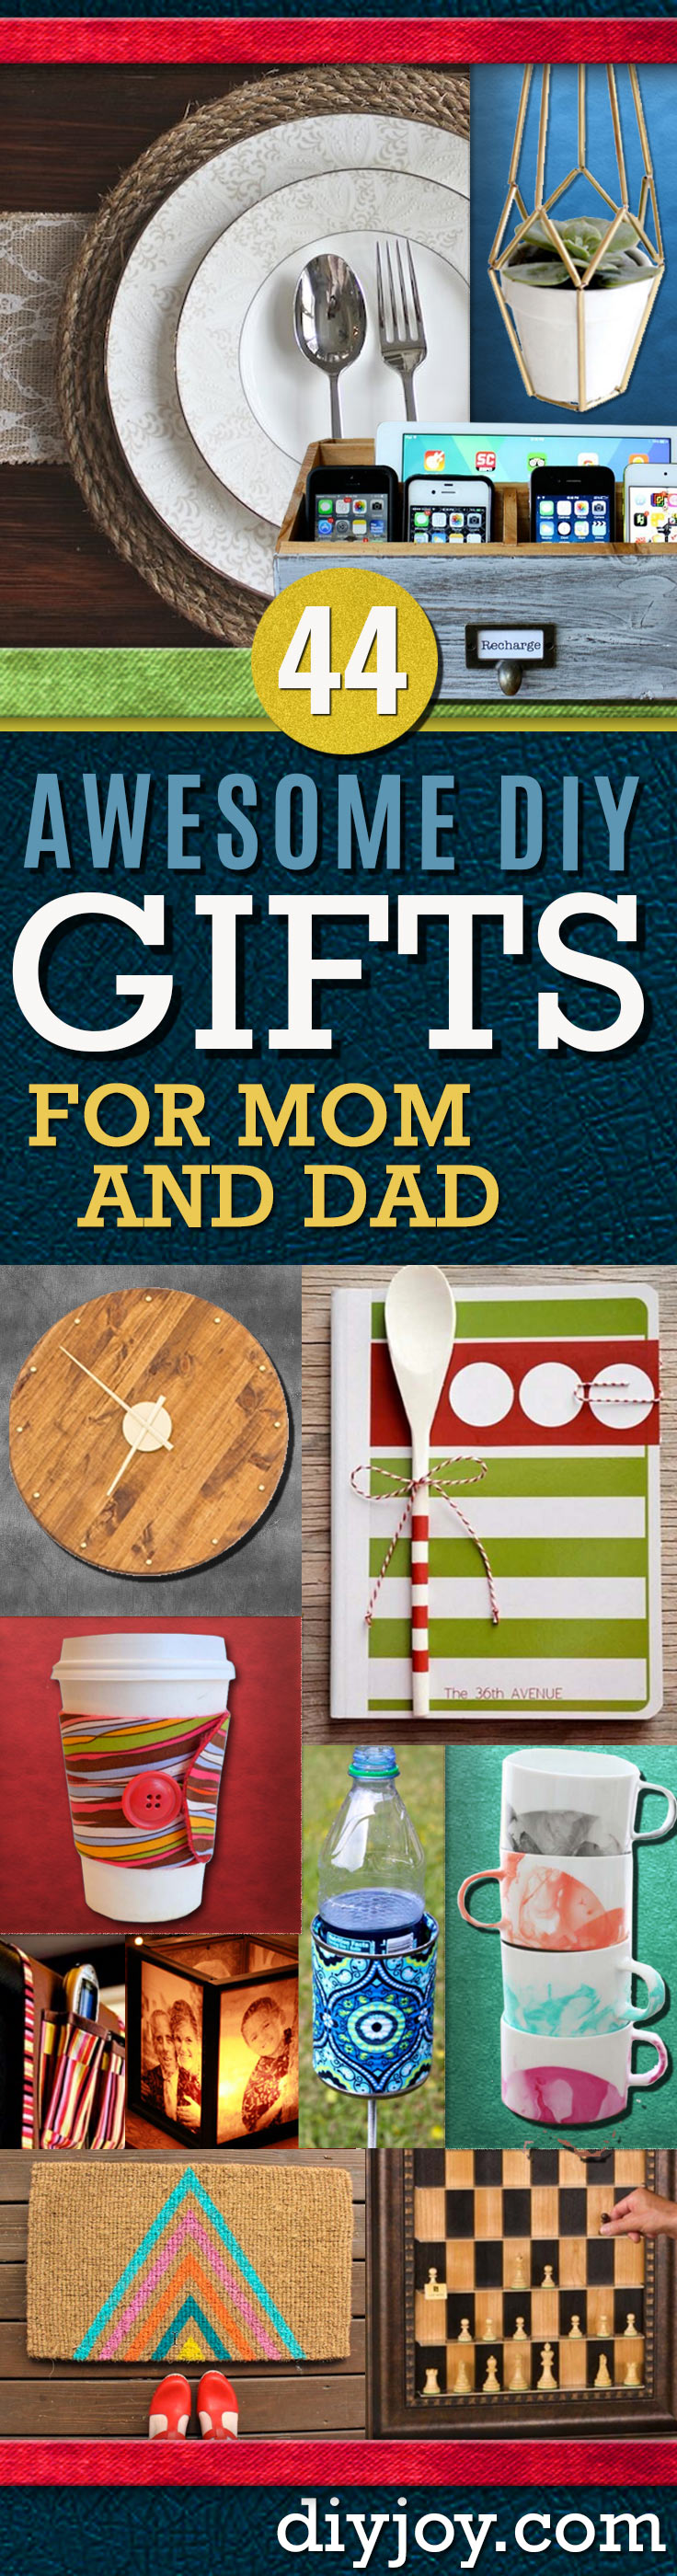 DIY Gifts for Mom and Dad - Homemade Christmas Gift Ideas for Your Parents. Cool  sc 1 st  DIY Joy : best christmas gifts for mothers - medton.org